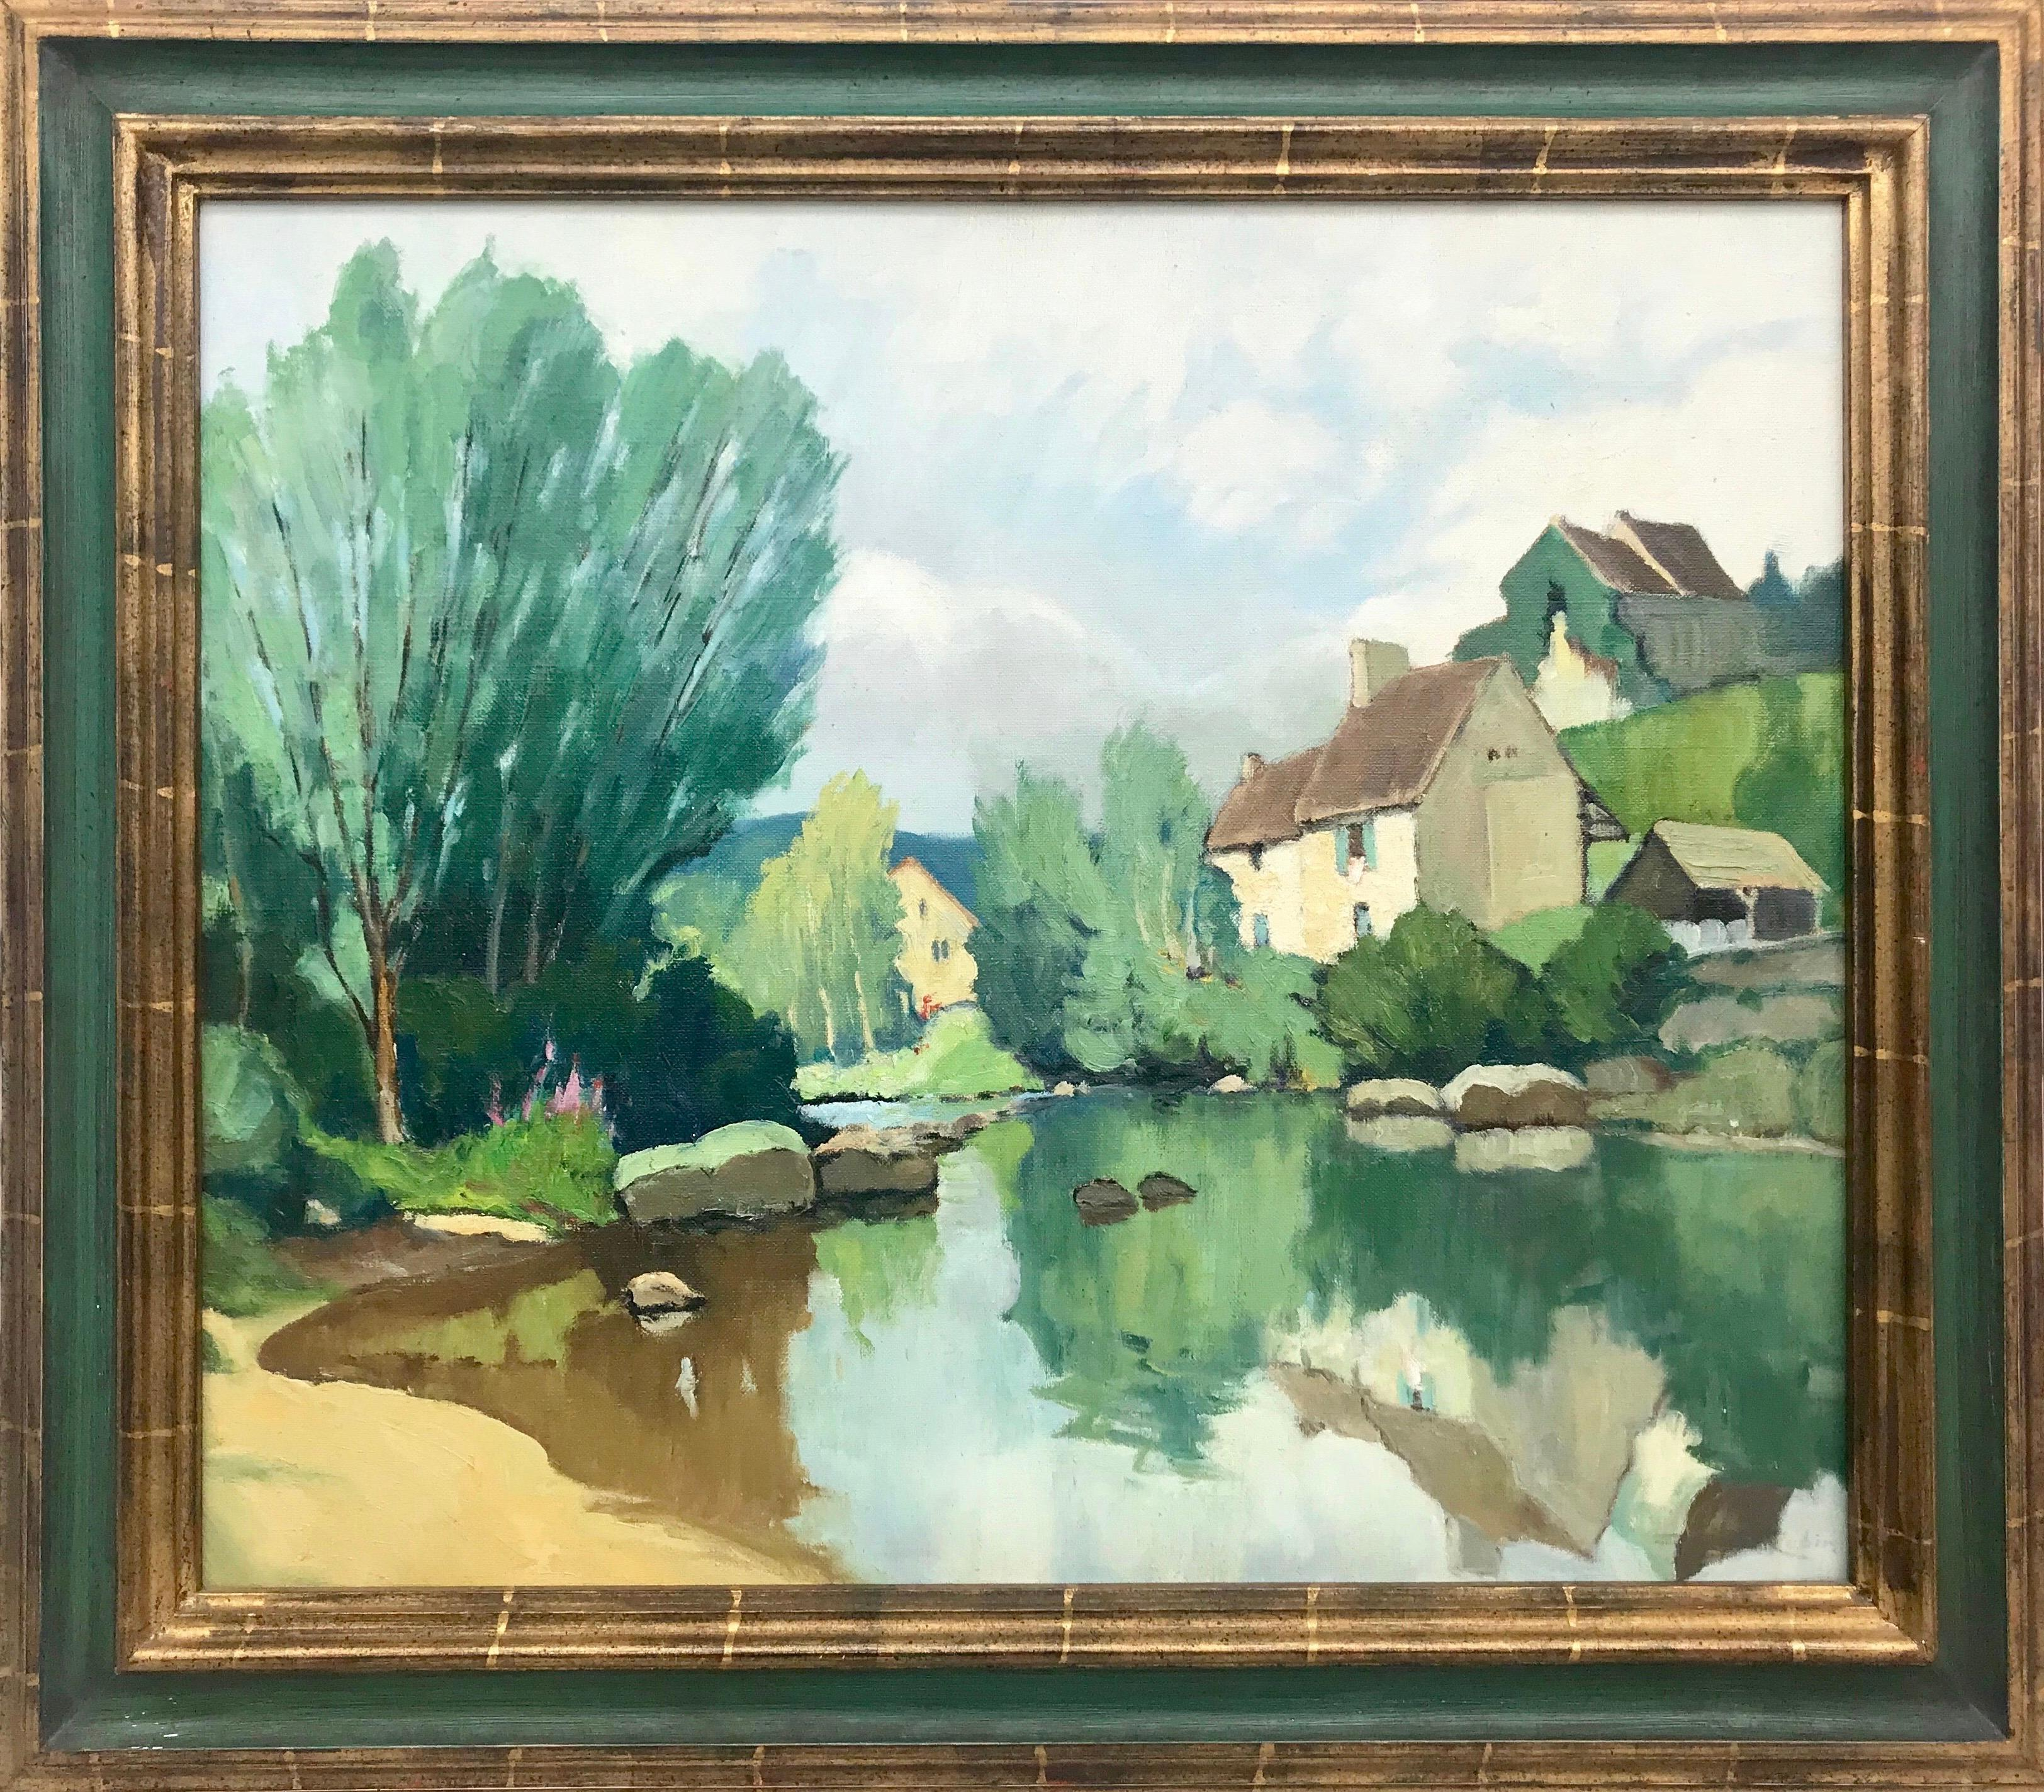 20th Century Riverside Impressionist Landscape Painting by Modern French Artist